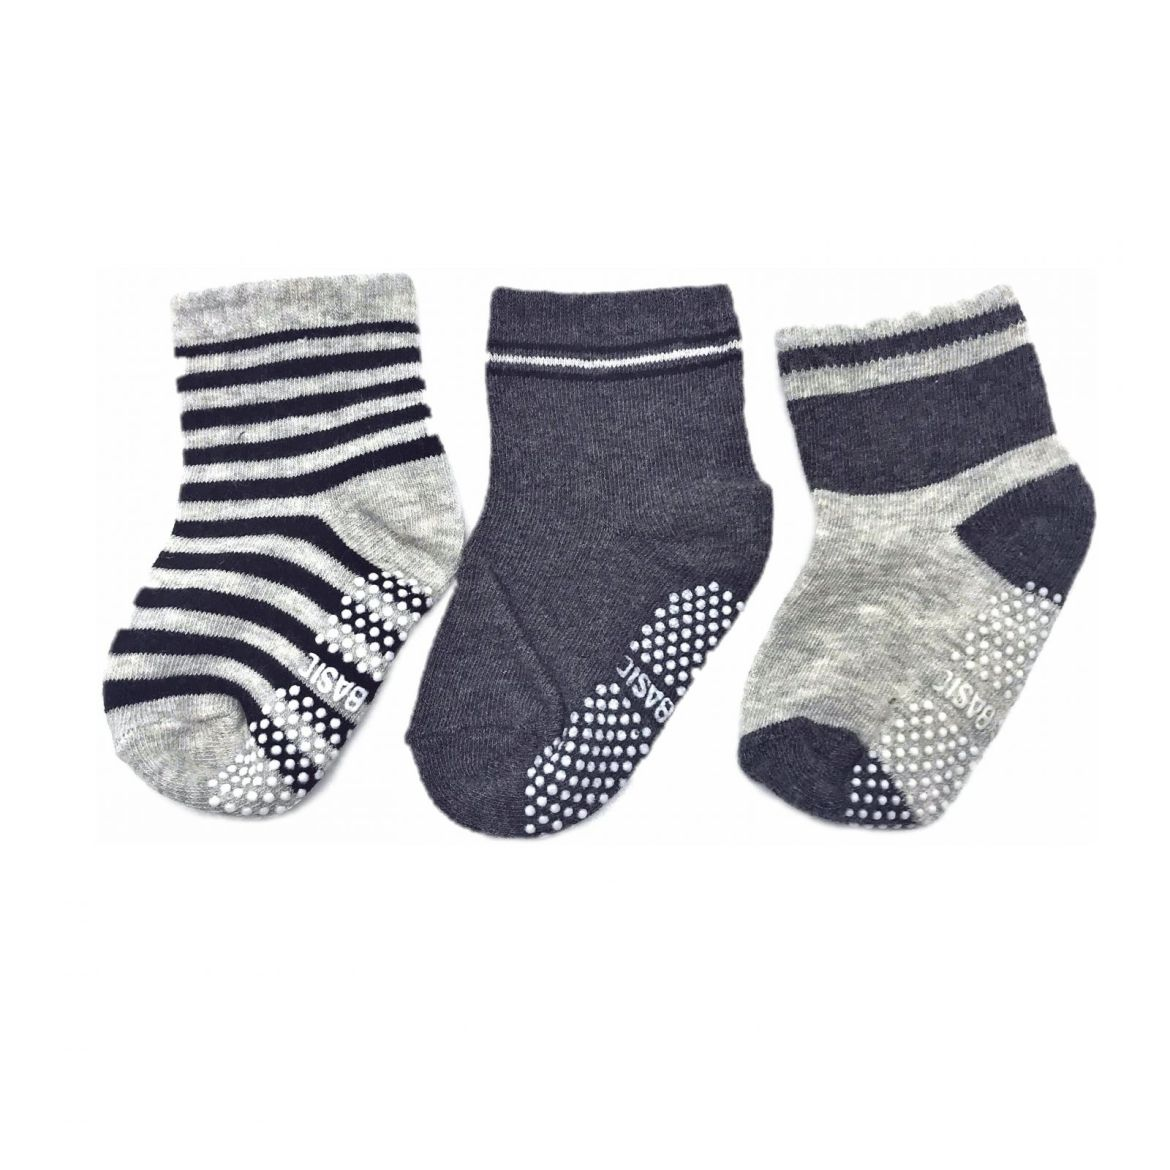 chaussettes-antiderapantes-unies-grises